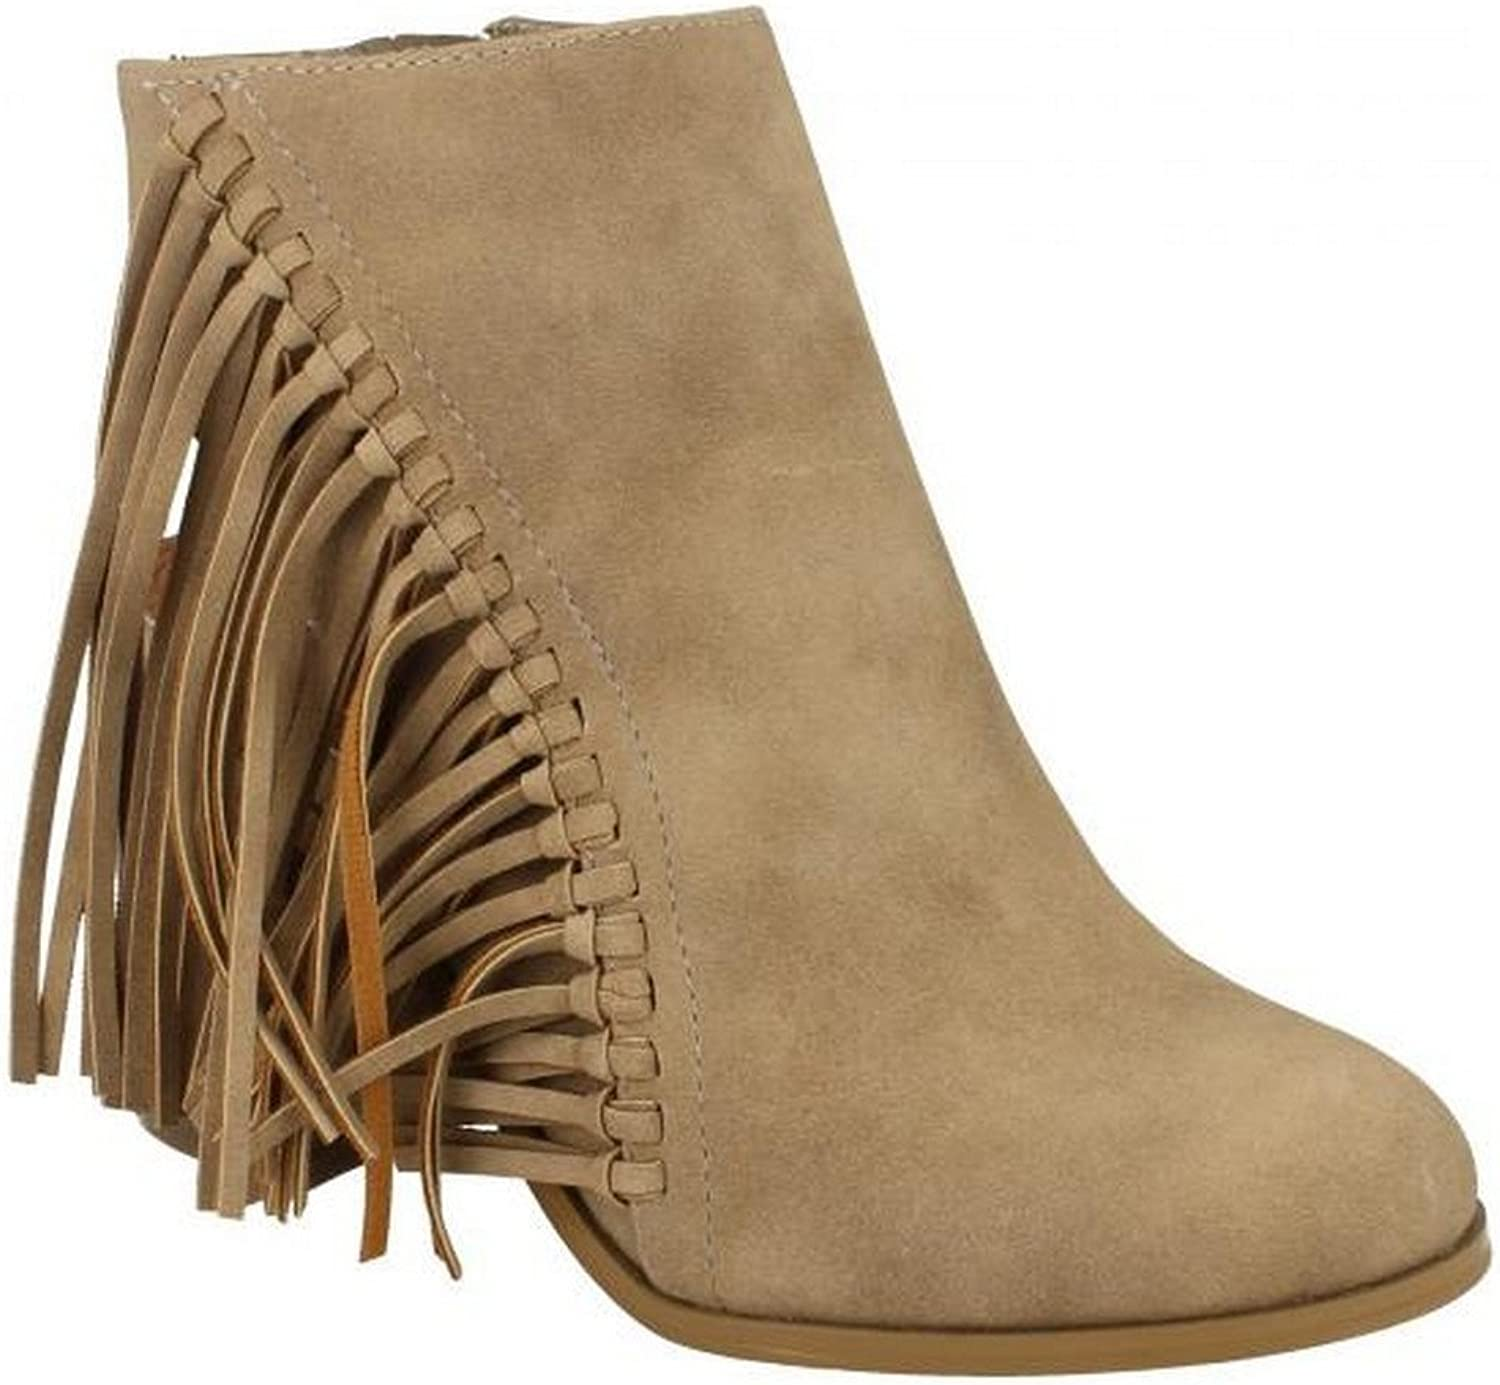 Spot On Womens Ladies Fringed High Heel Ankle Boots